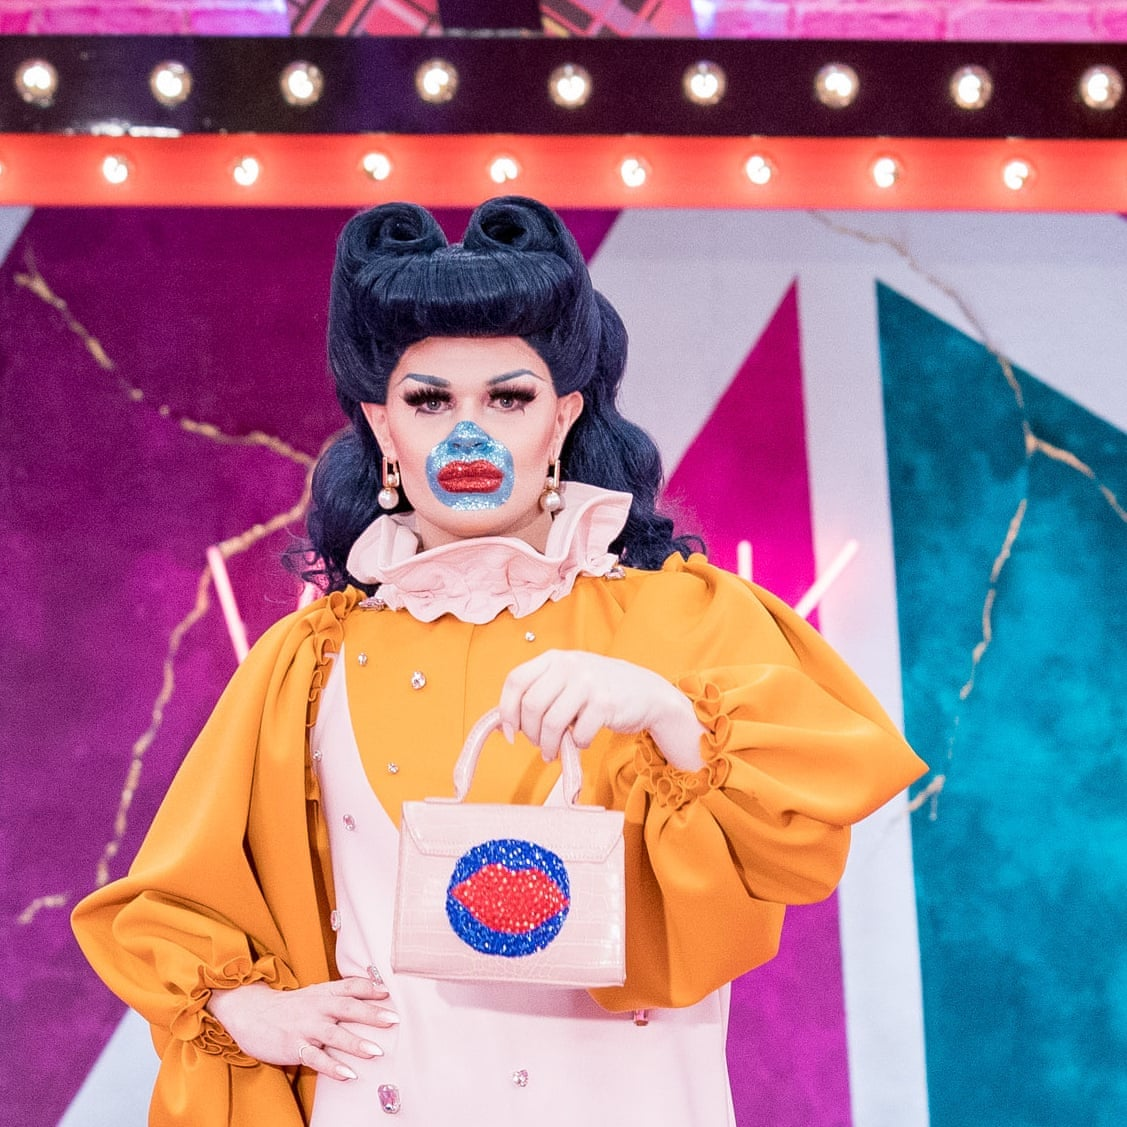 'Drag Race UK' season 2 introduced us to Sister Sister, but not everyone is fond of her. Hear about her experiences with online trolls.